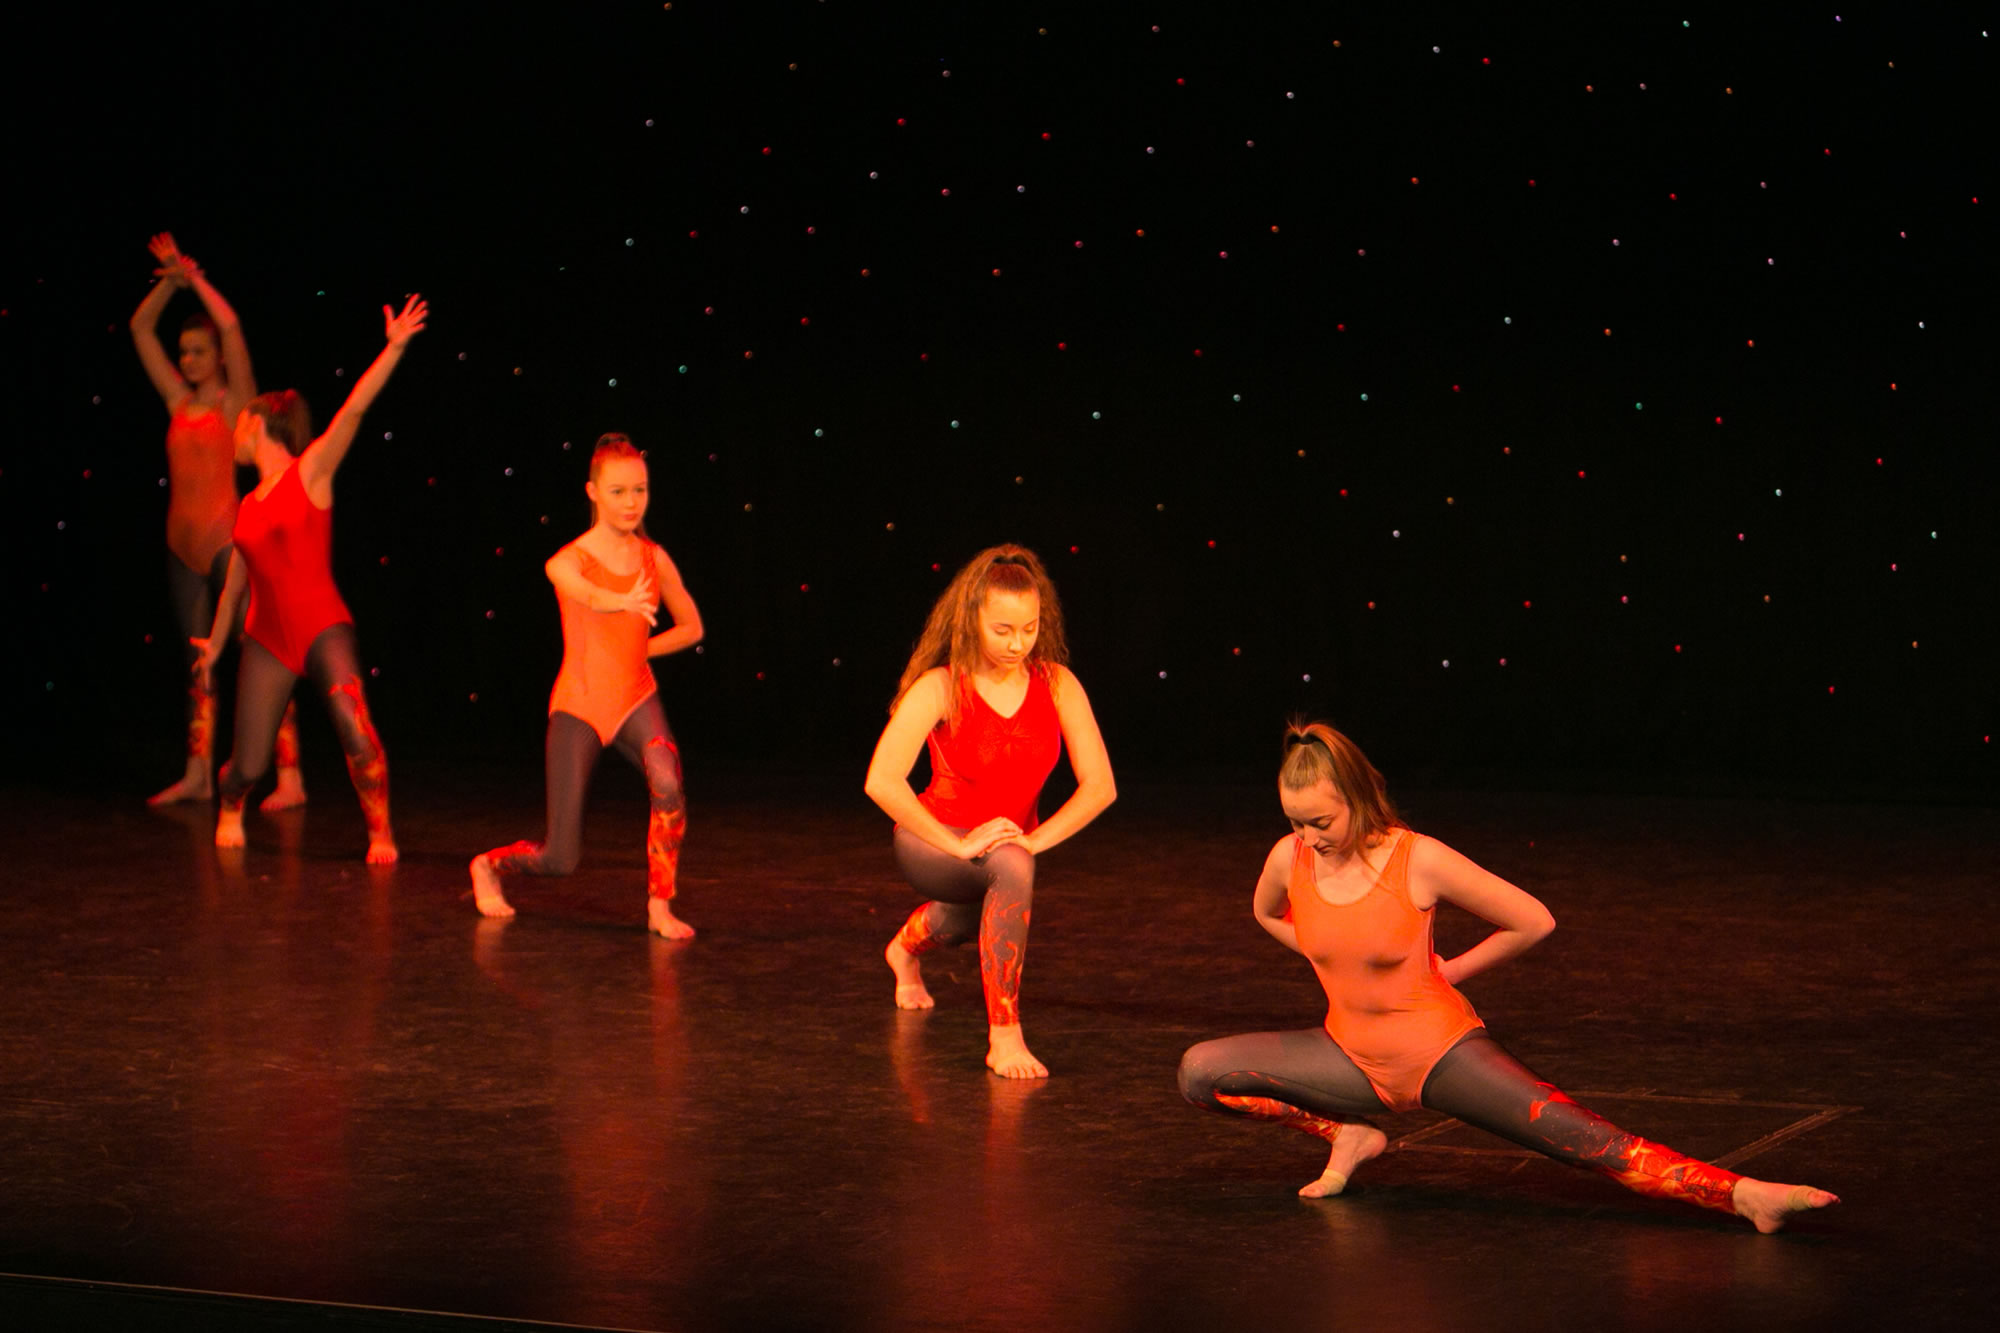 Hitchin_School_of_Dance_Show_2019-SM1_2049.jpg